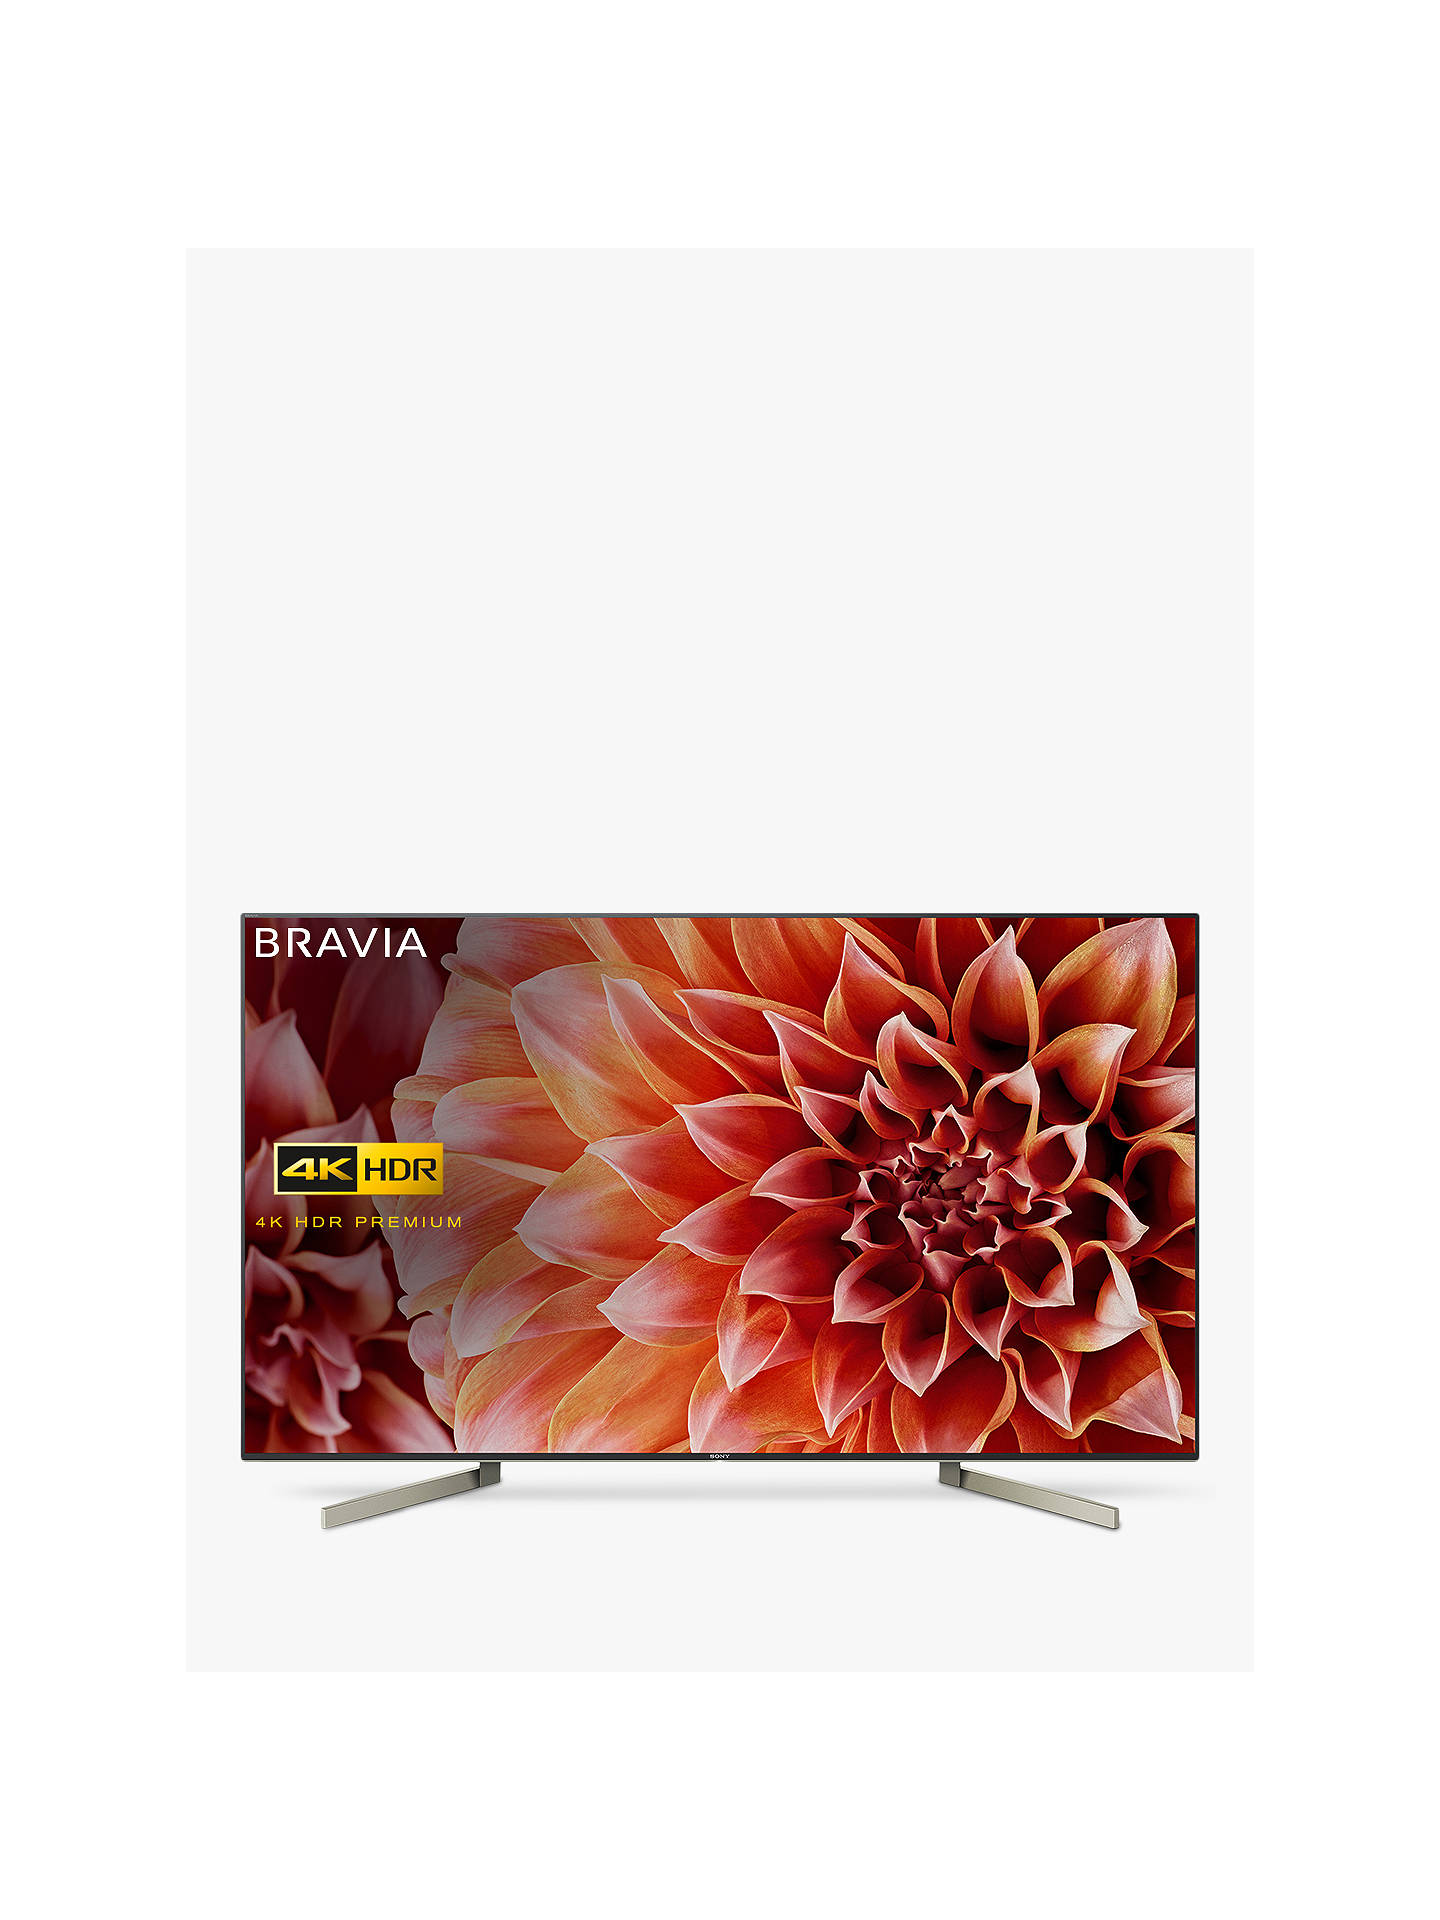 Sony Bravia KD49XF9005 LED HDR 4K Ultra HD Smart Android TV, 49